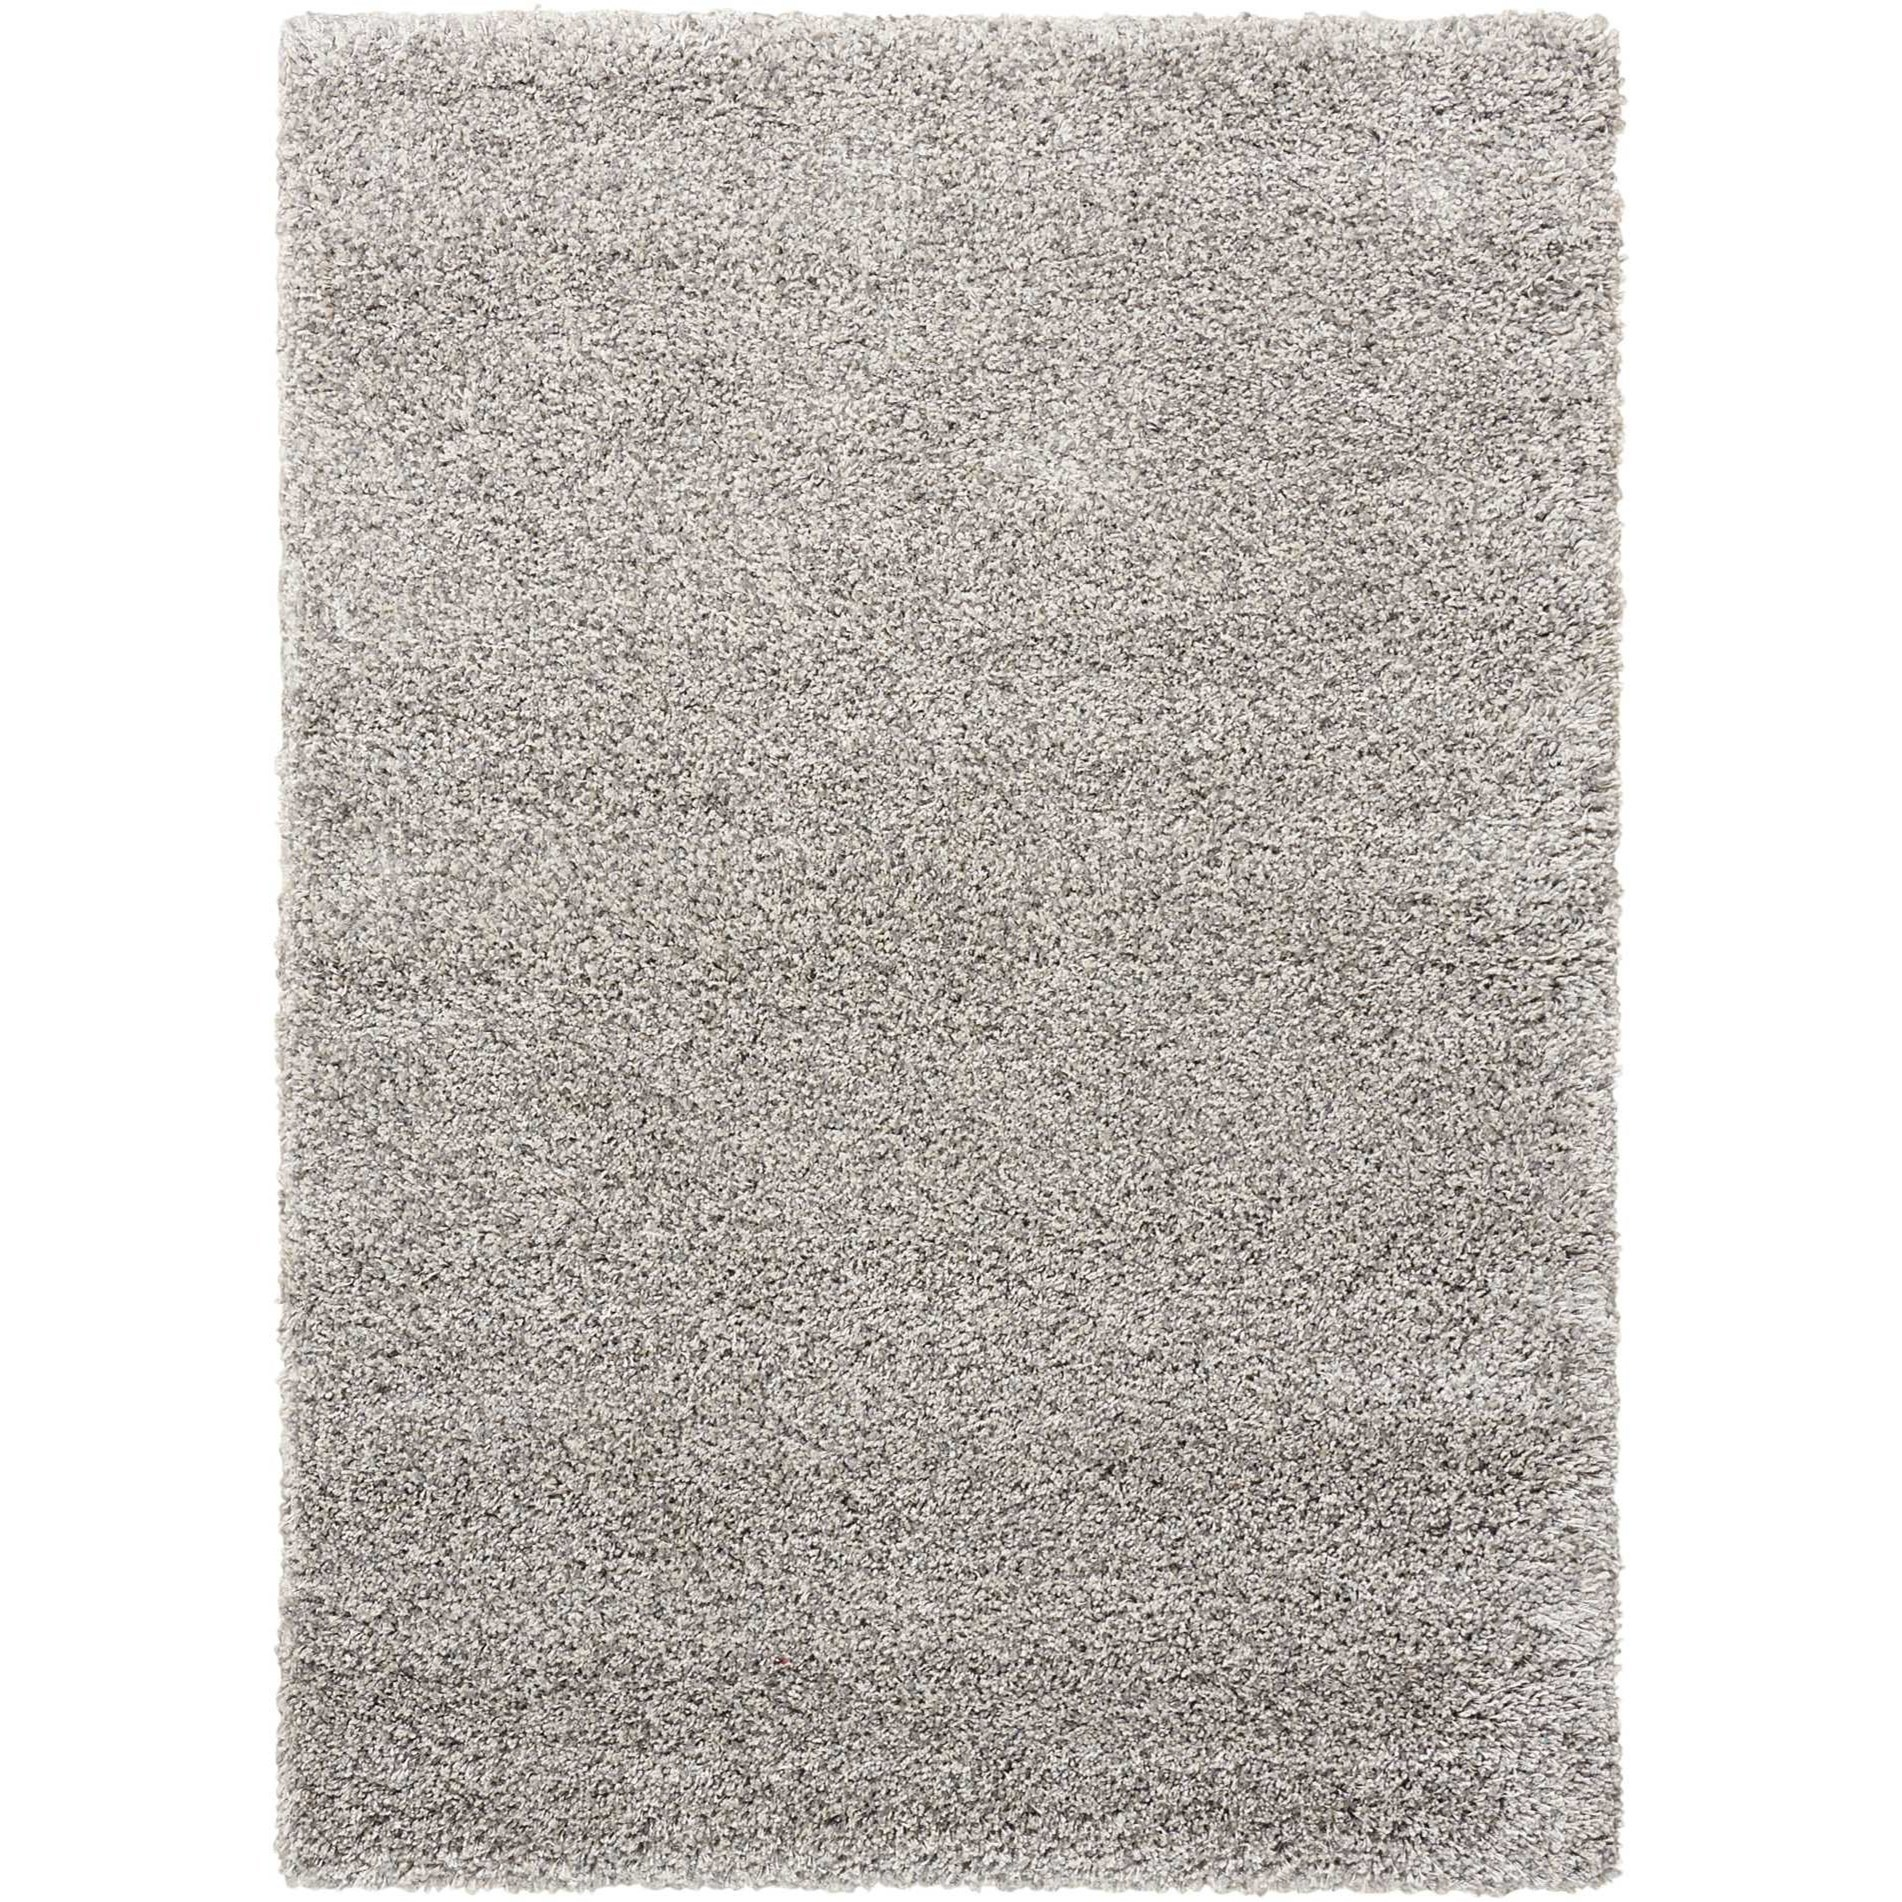 Amore Amore AMOR1 Grey 5'x8' Area Rug by Nourison at Home Collections Furniture